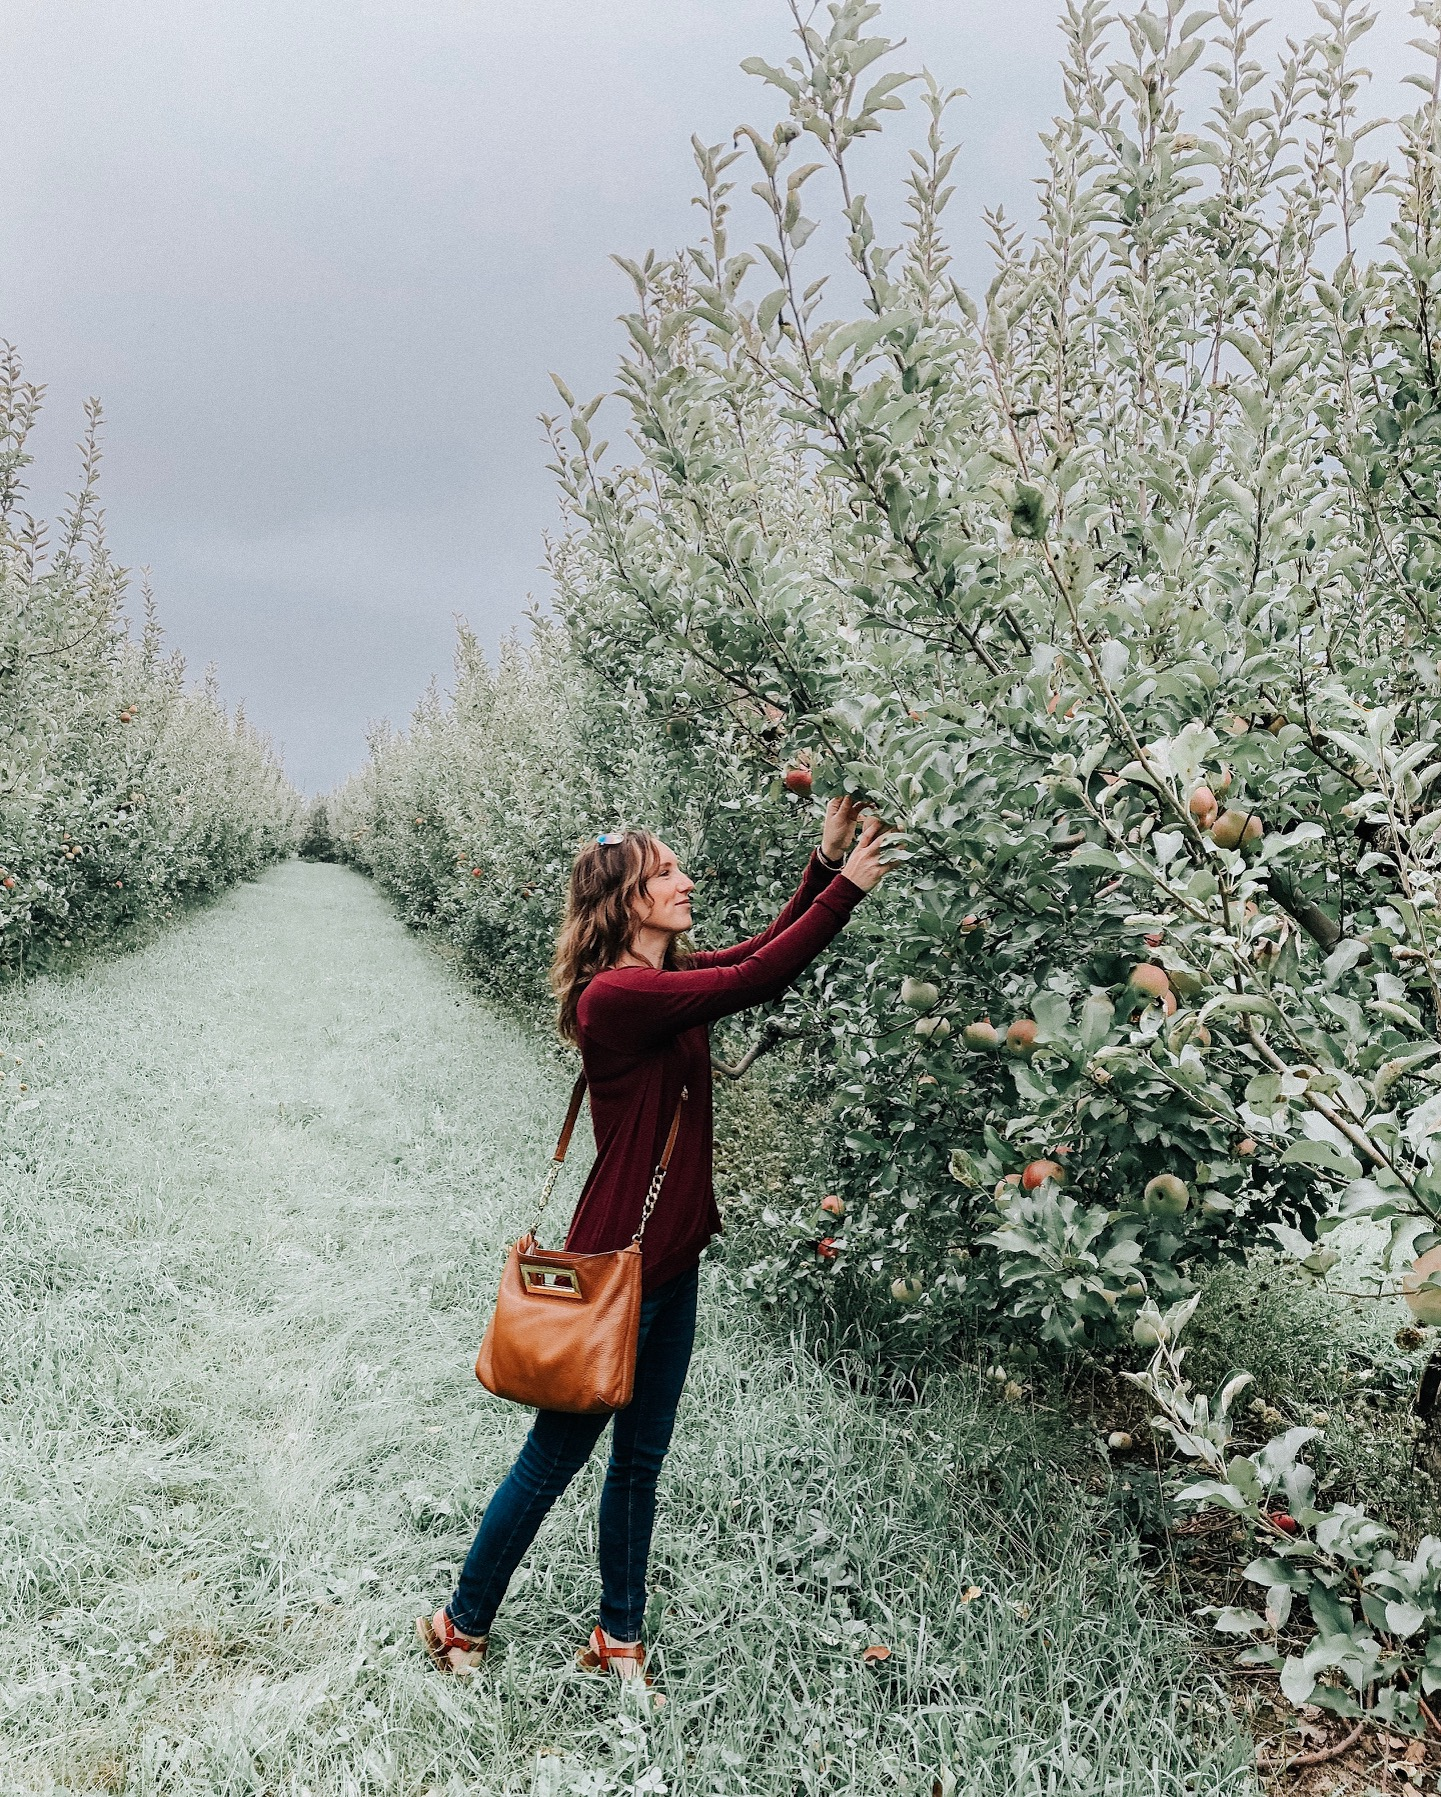 Fall Instagram Favorites | Daily Splendor Life and Style Blog | Apple Picking #casualstyle #appleorchard #momstyle #everydayfashion #fallstyle #fallneutrals